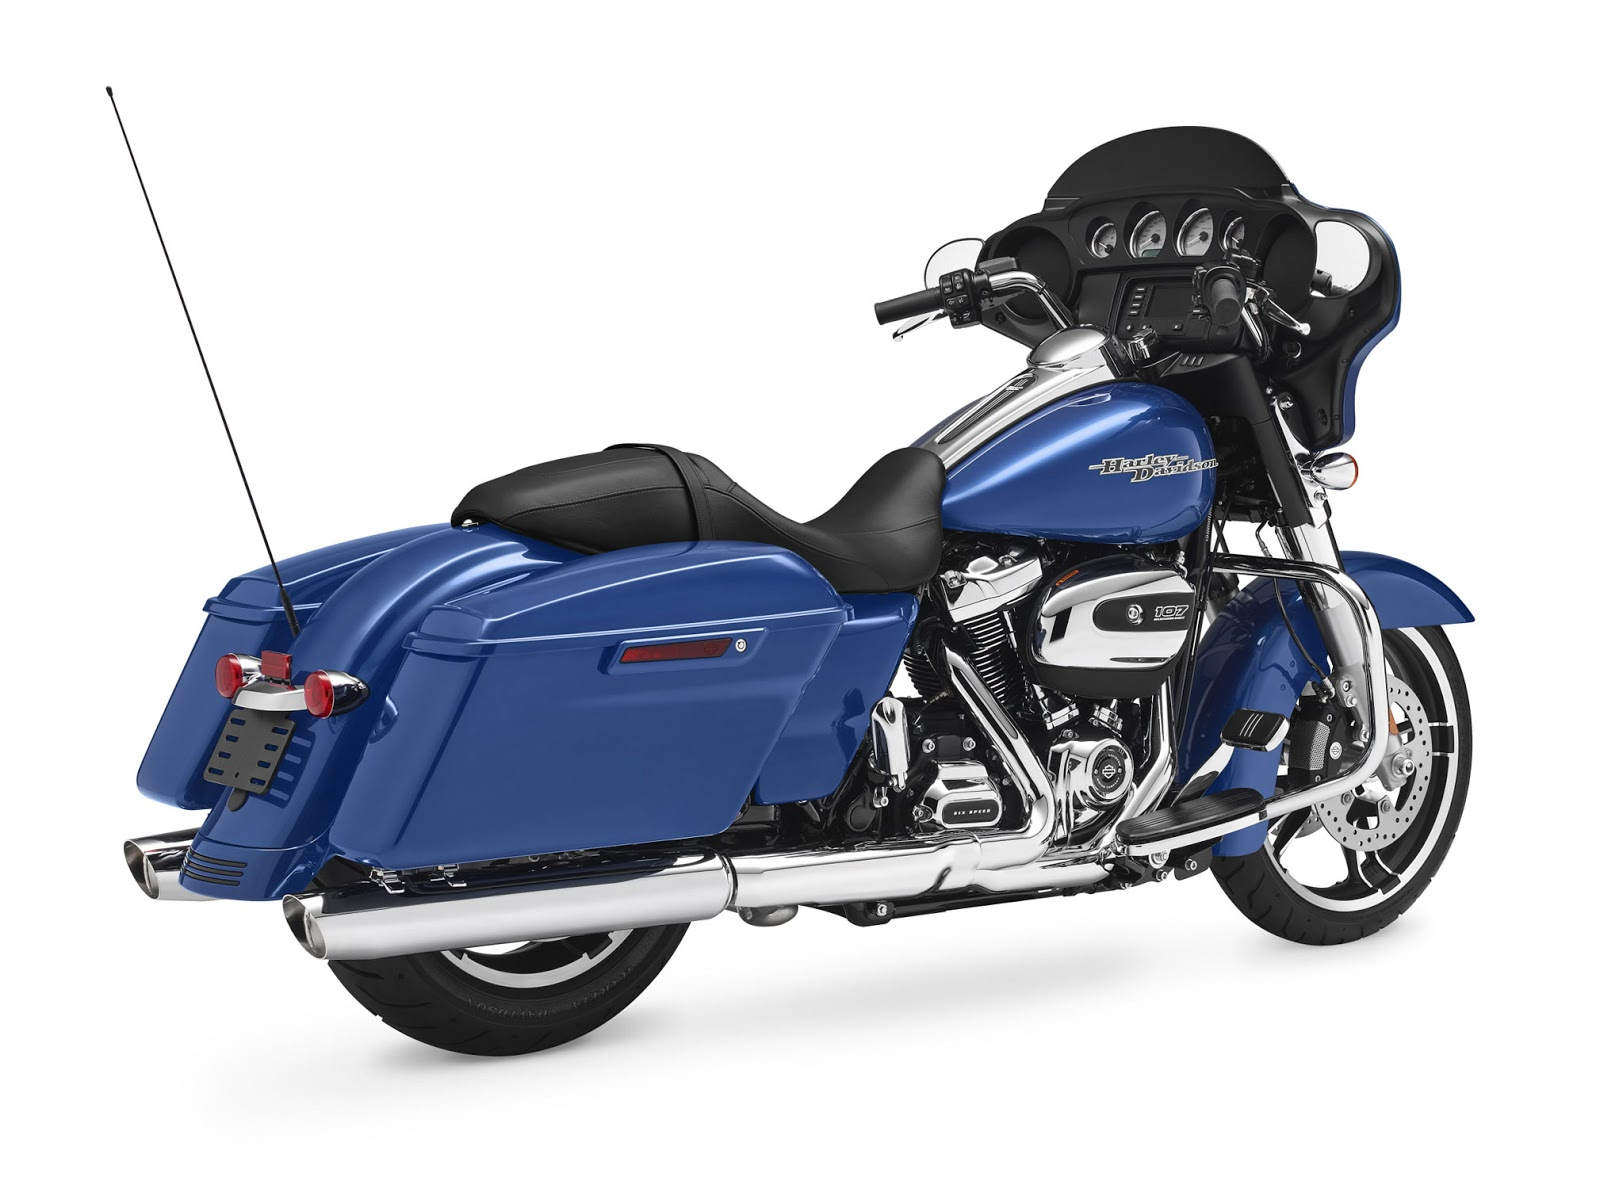 Harley Davidson Road Glide Owners Manual